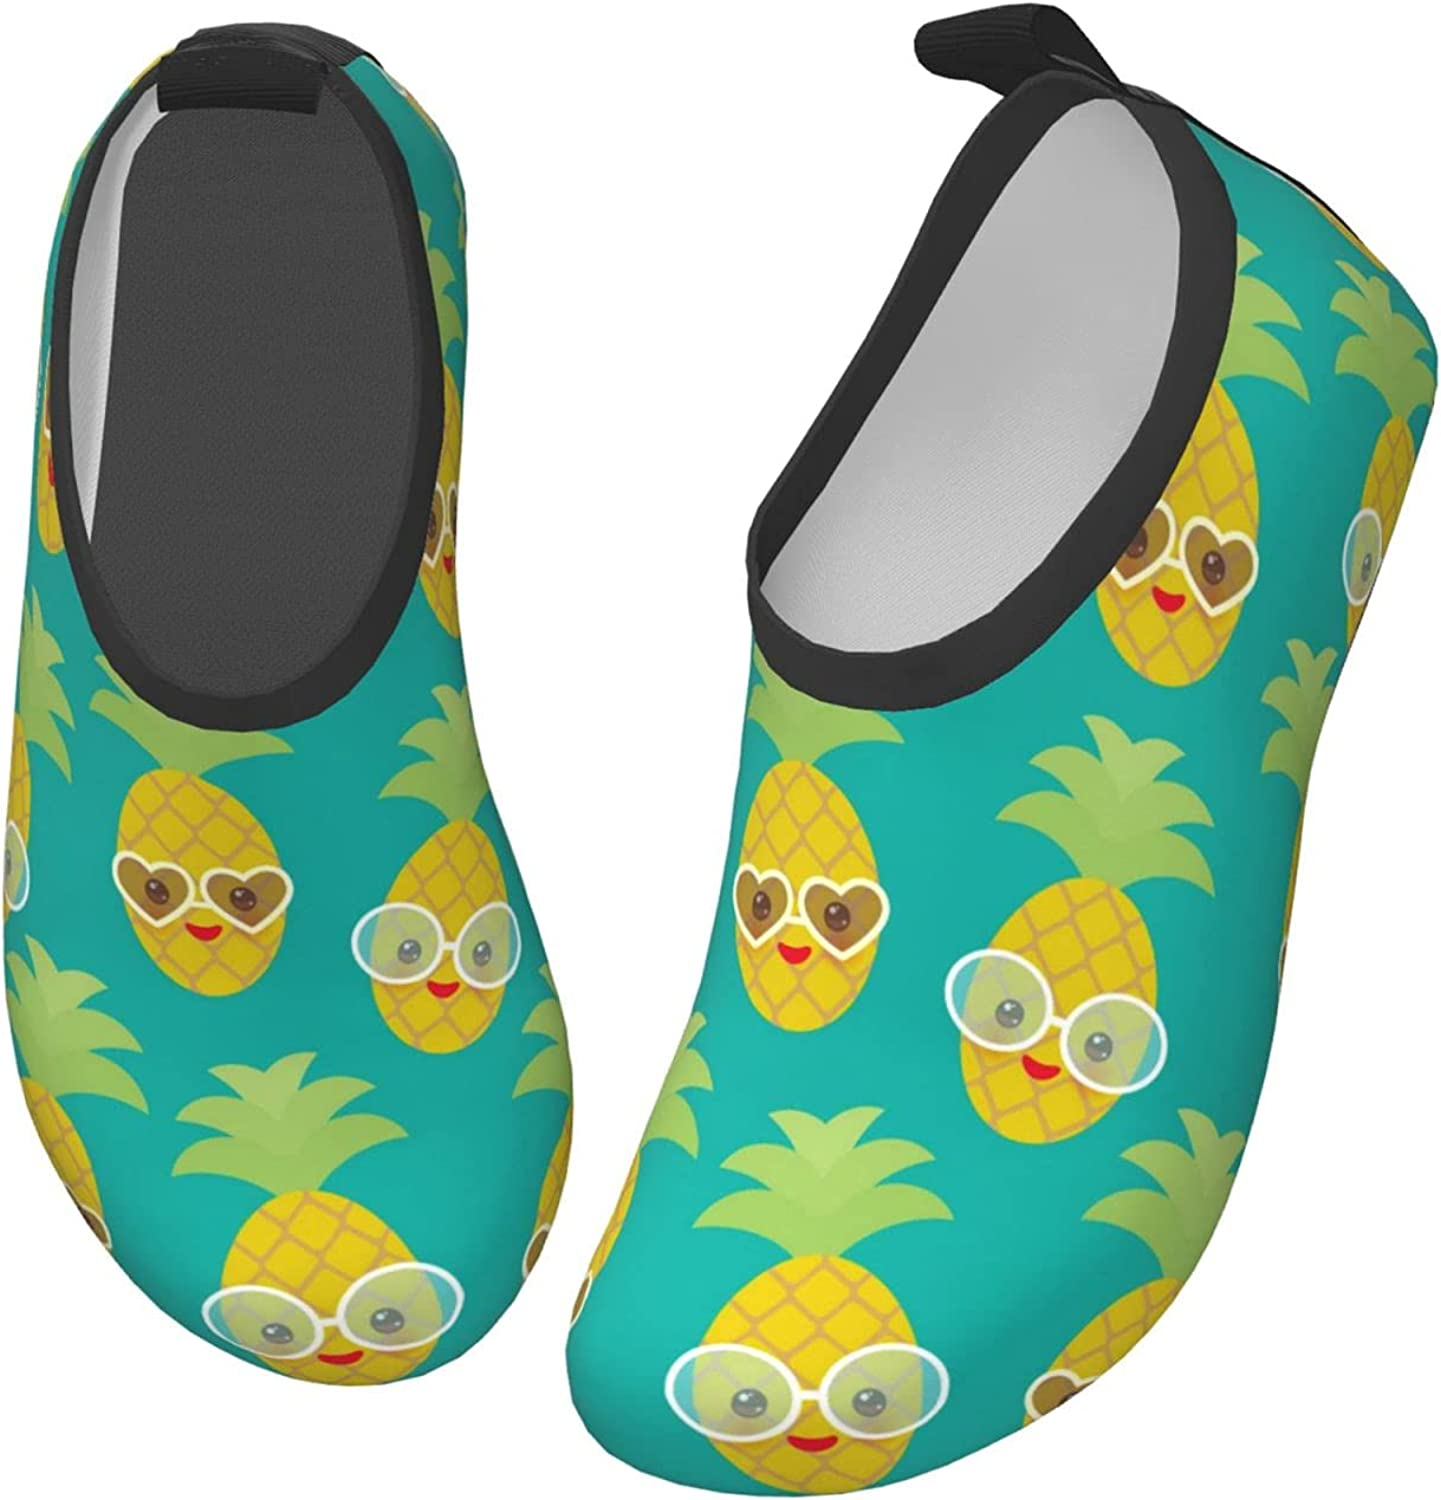 Fairy UMI Pineapple with Sunglasses Toddler Water Shoes Non-Slip Aqua Sports Shoes Barefoot Swim Shoes Beach Surf for Boys Girls